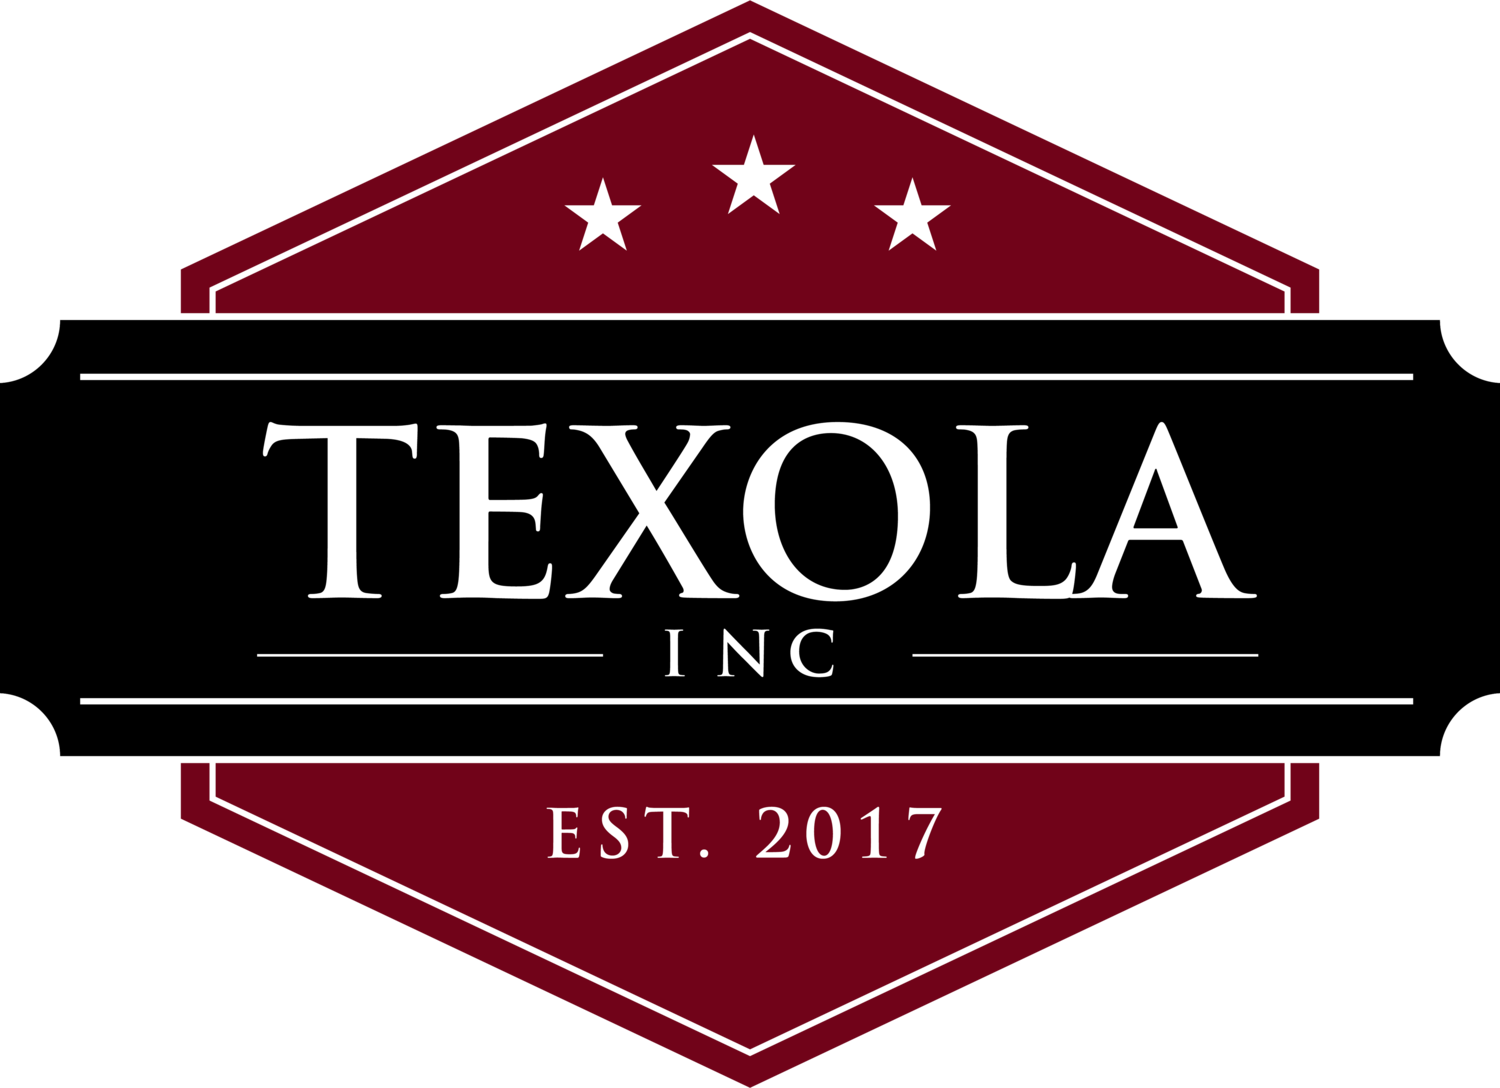 Texola Inc